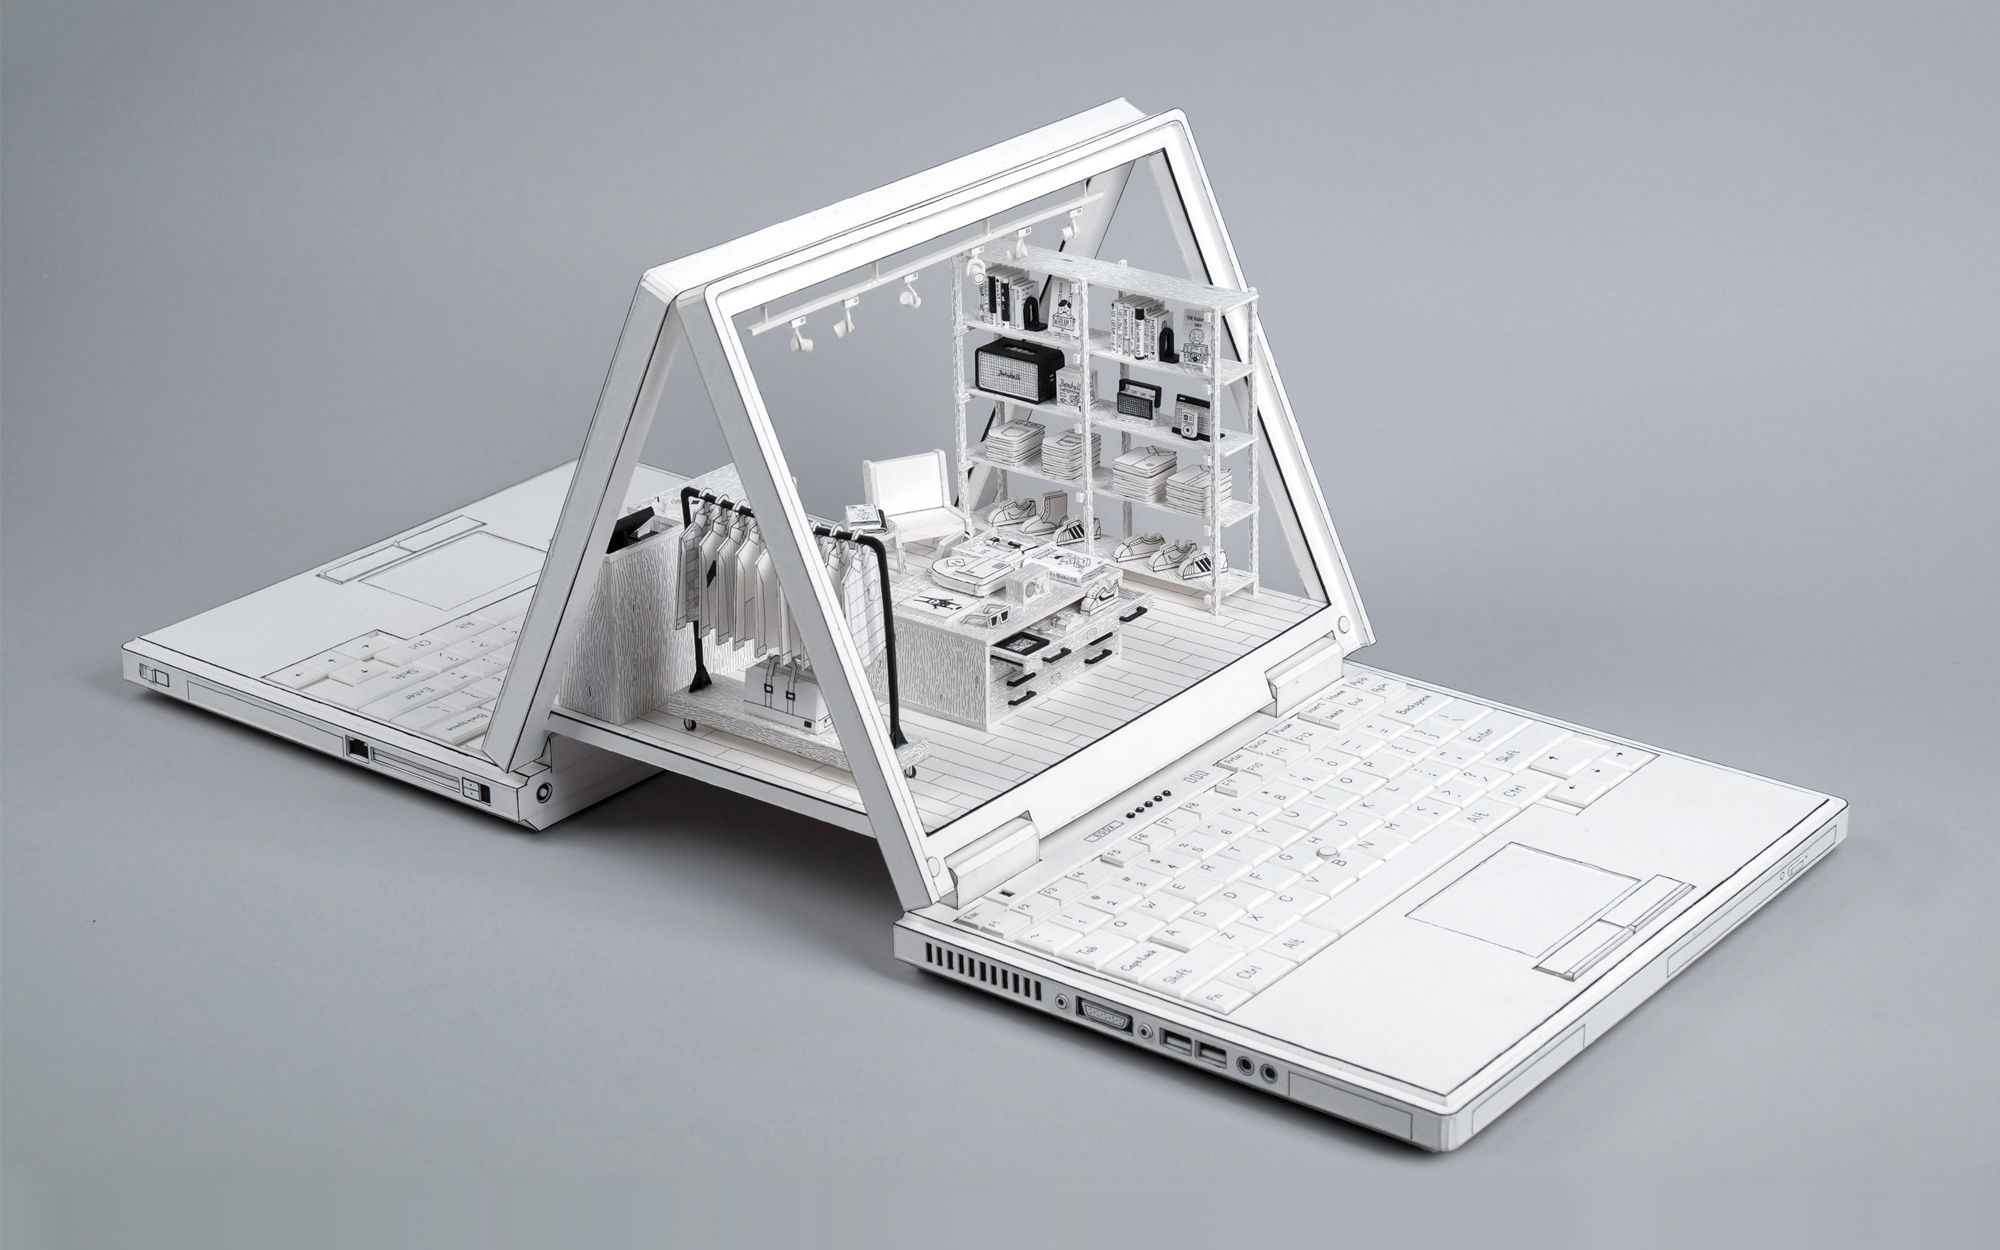 Cardboard Dioramas of Laptops Depicting Human Relationships with Technology